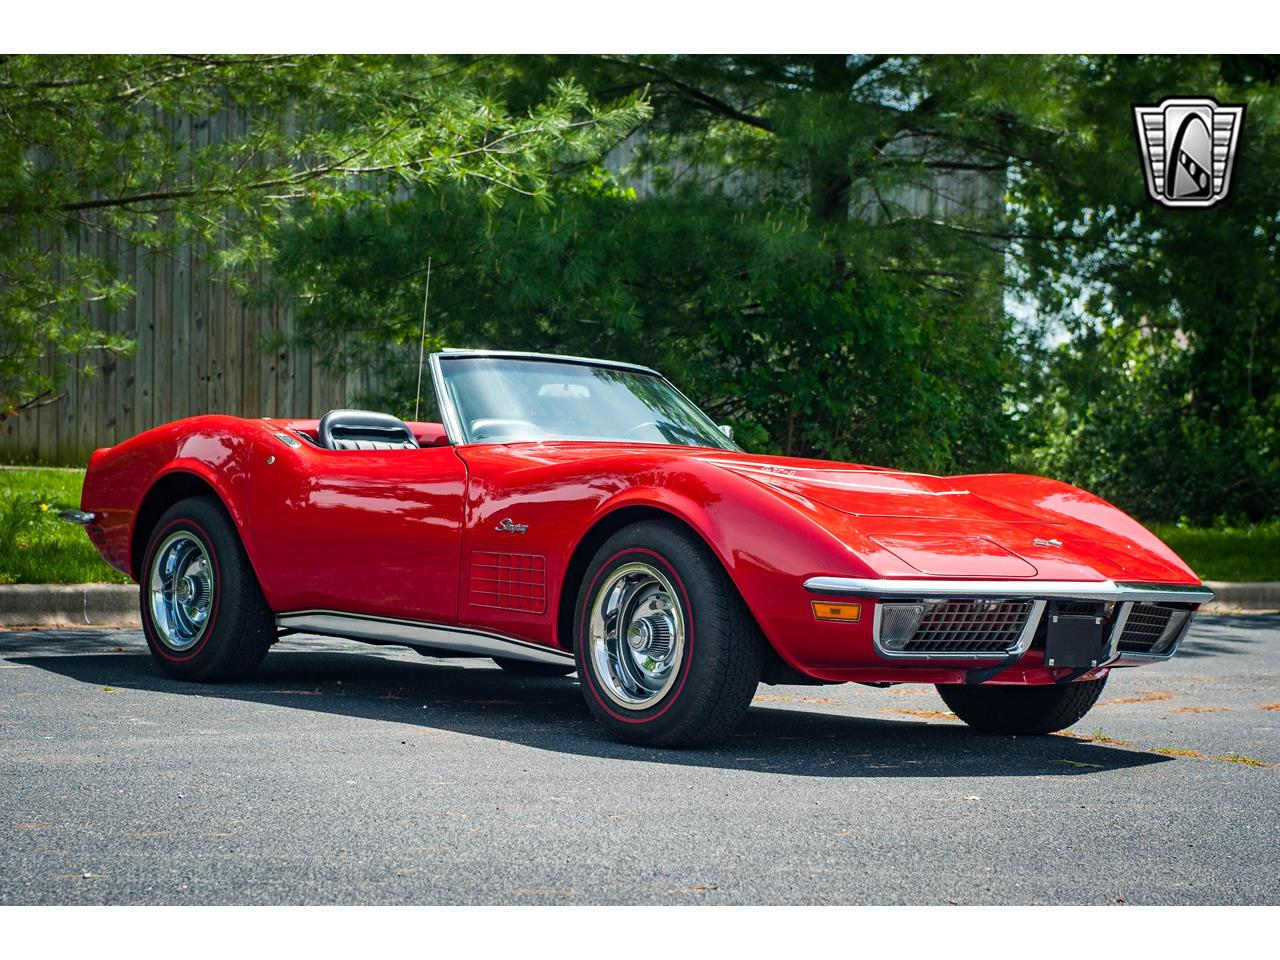 Large Picture of Classic '71 Corvette - $40,500.00 Offered by Gateway Classic Cars - St. Louis - QB9M